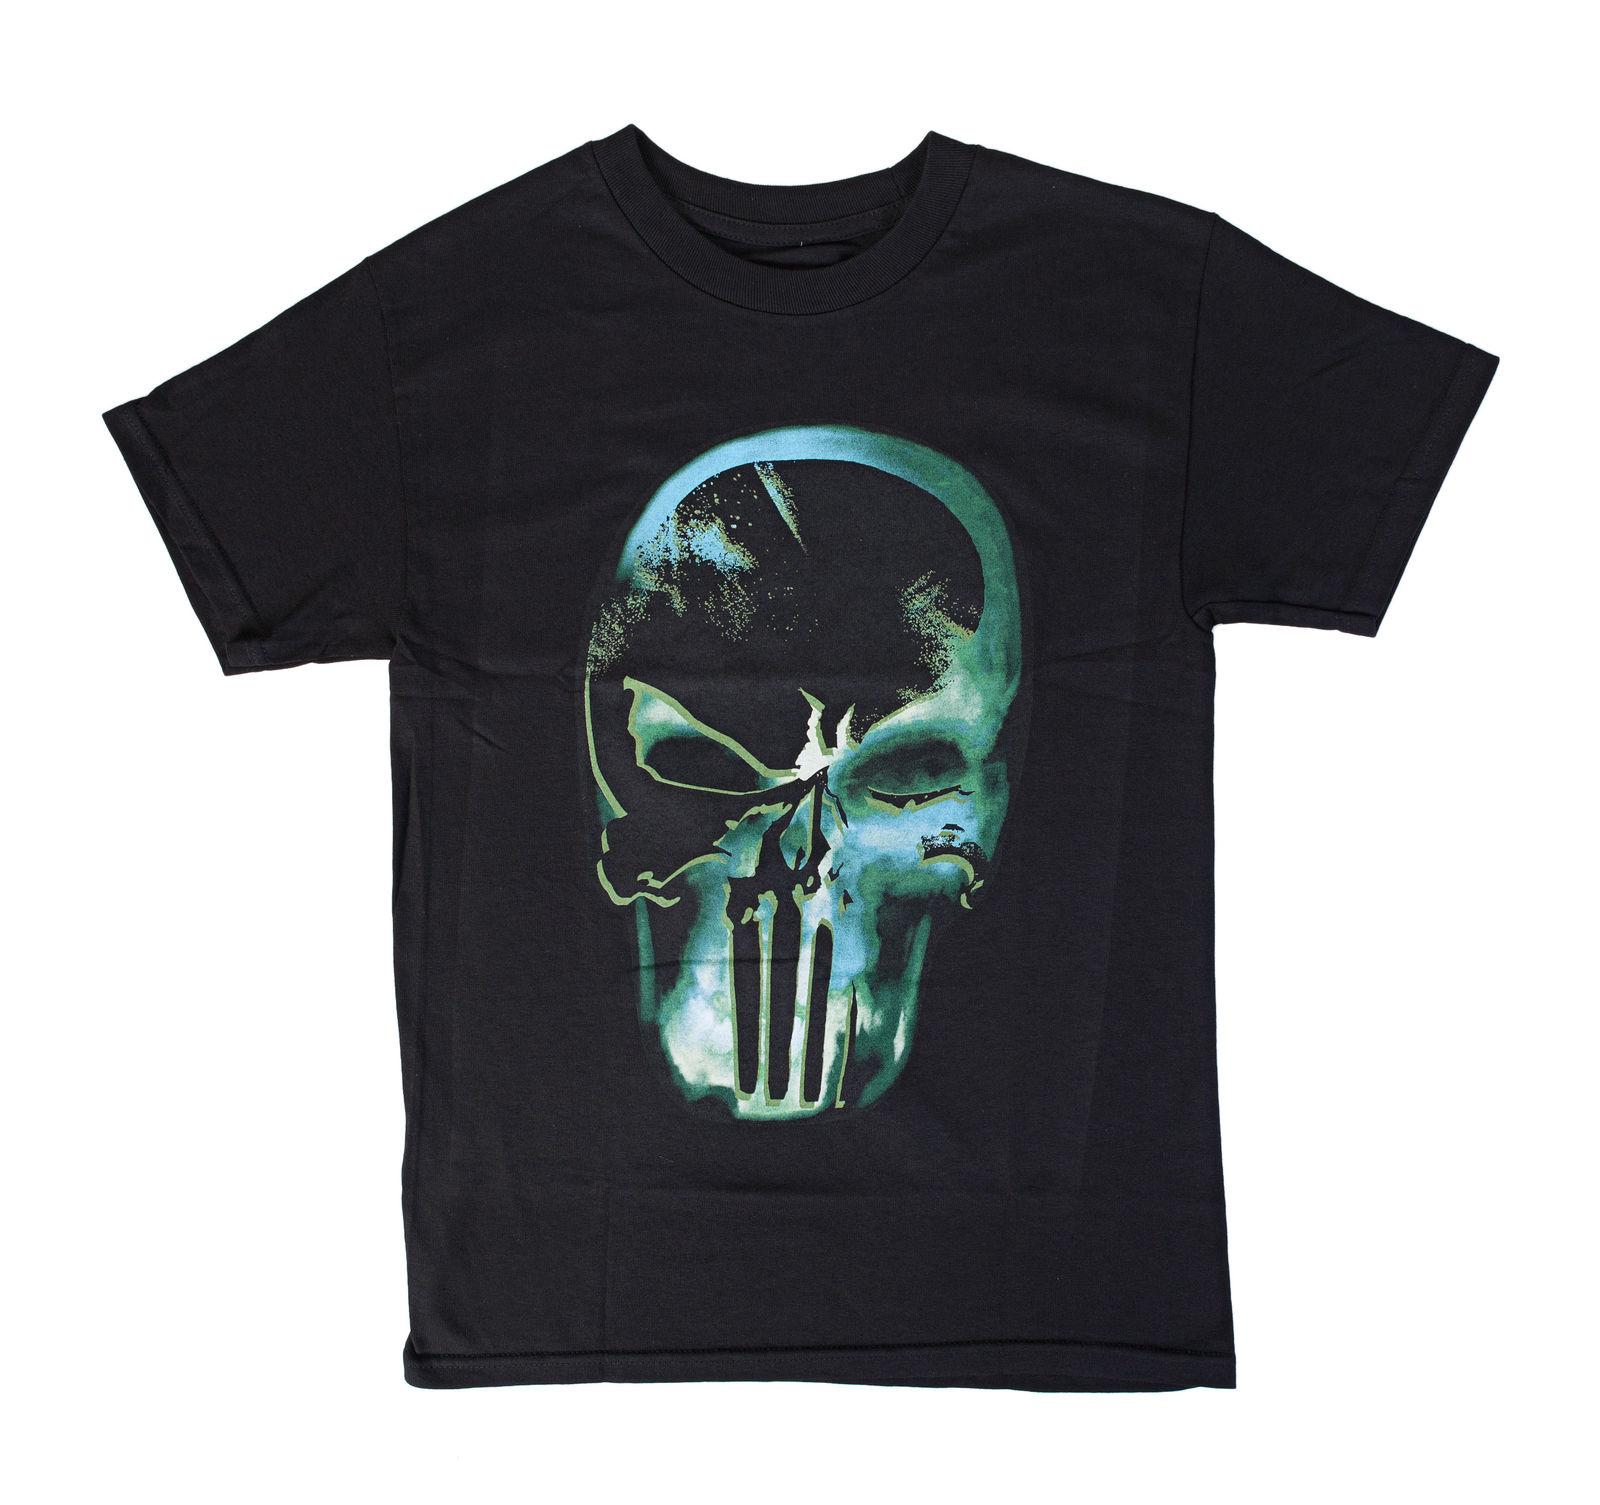 Marvel Punisher Maglietta con logo fantasma a raggi X T-shirt con o-collo